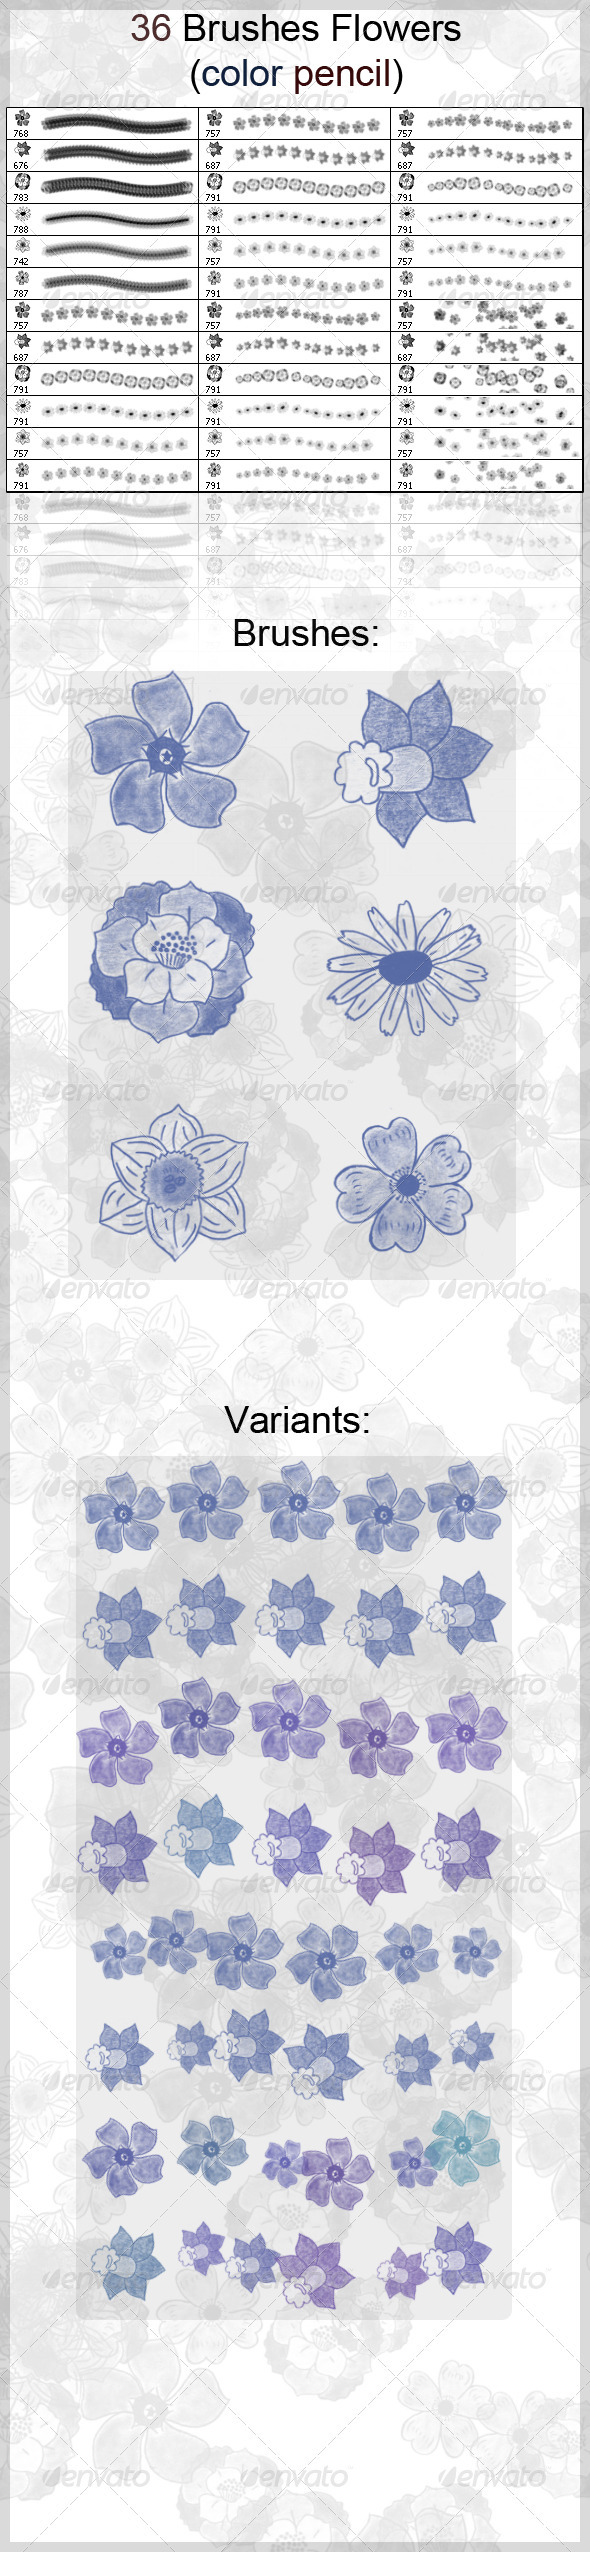 36 Brushes Flowers (Color Pencil) - Flourishes Brushes